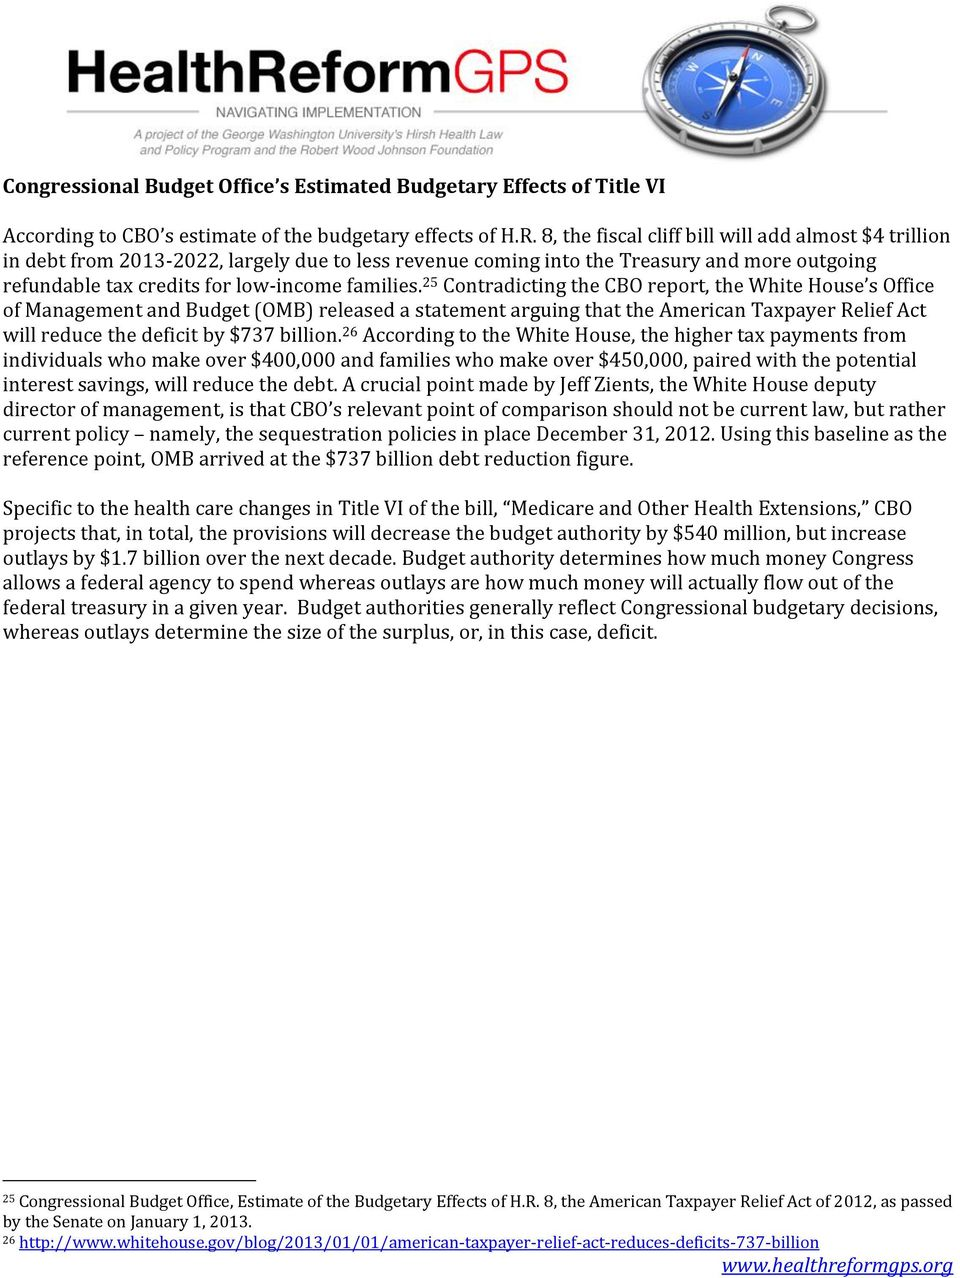 25 Contradicting the CBO report, the White House s Office of Management and Budget (OMB) released a statement arguing that the American Taxpayer Relief Act will reduce the deficit by $737 billion.